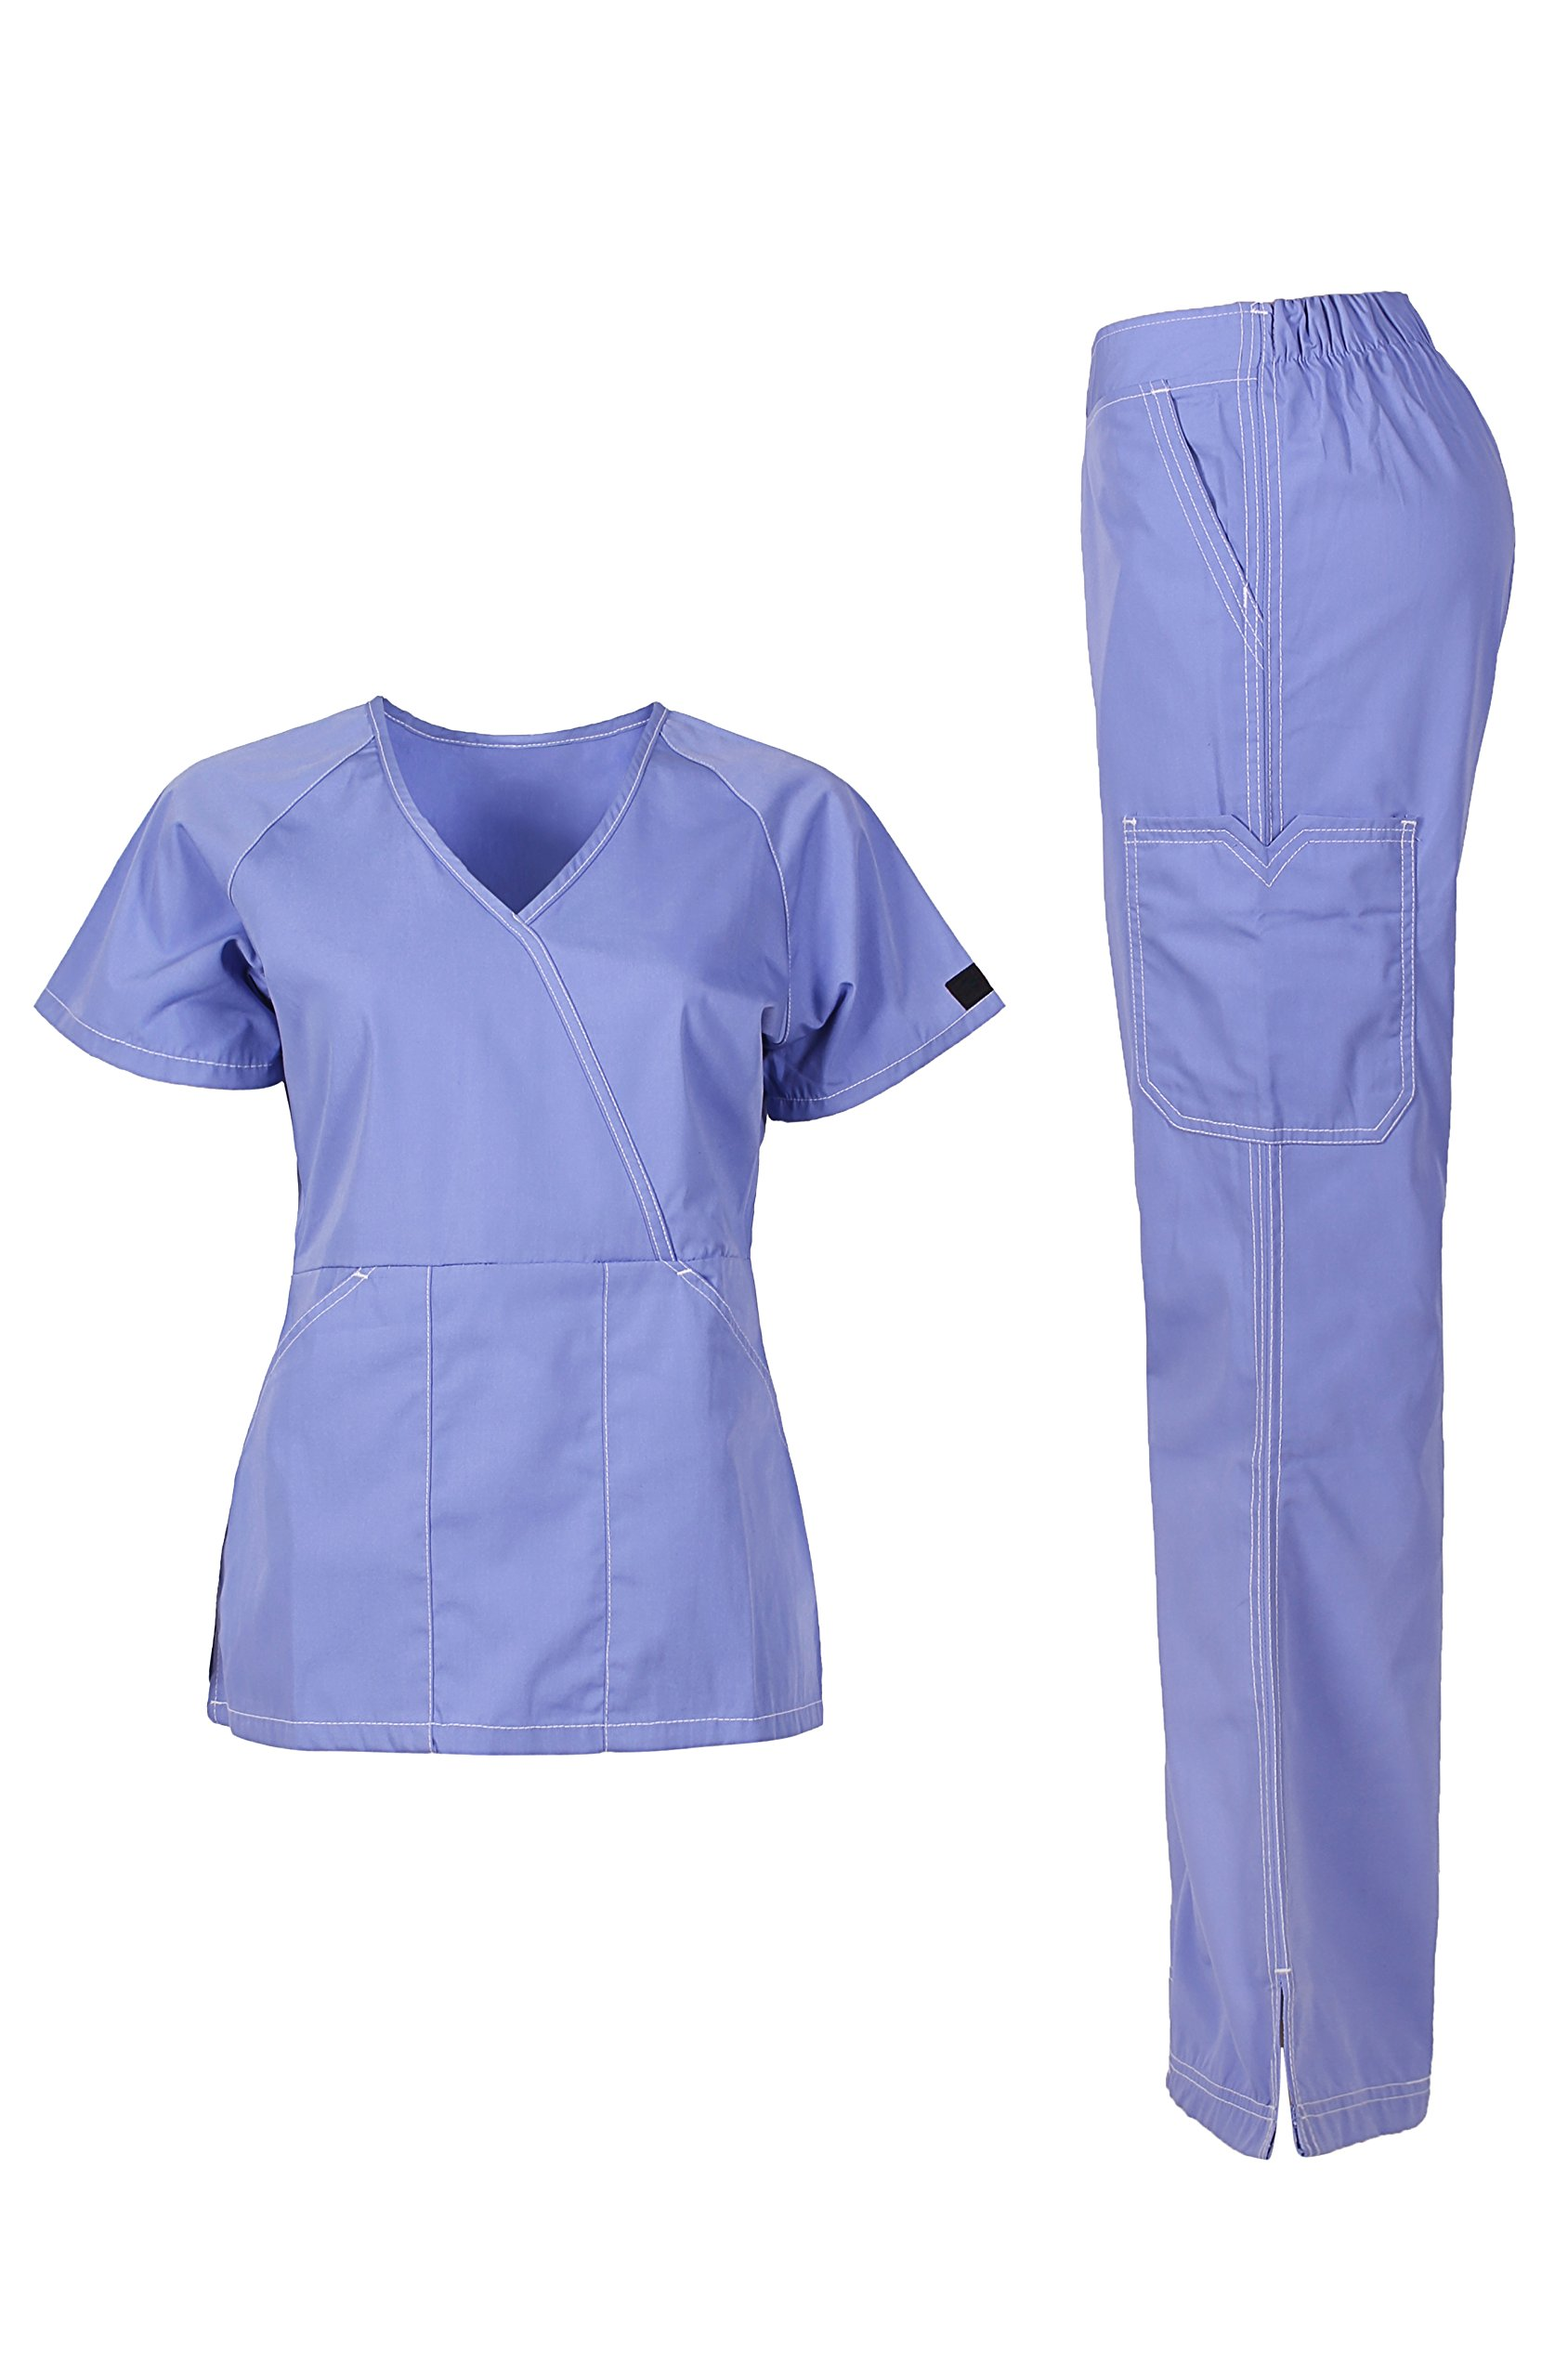 MedPro Women's Medical Scrub Set (Top & Bottom) Light Blue M (5666)